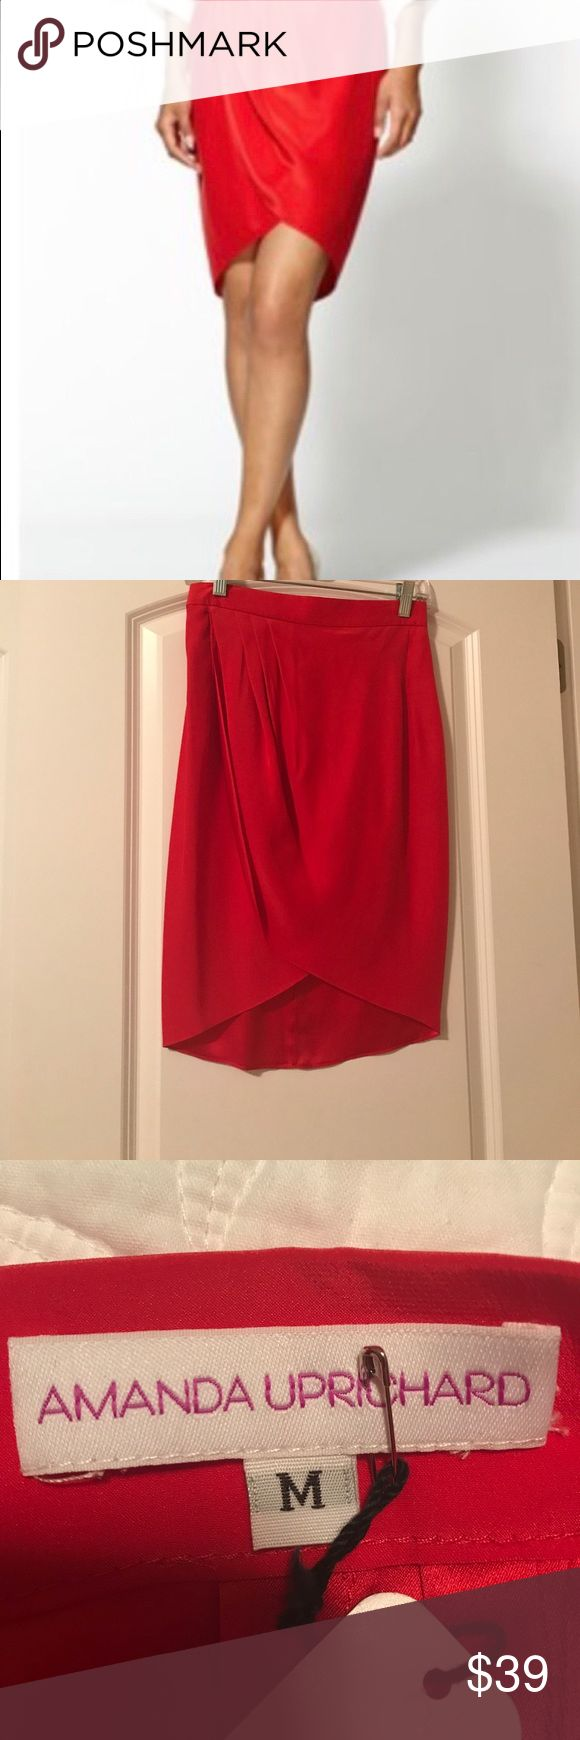 👛CLOSEOUT👛 Amanda Uprichard Tulip Skirt NWT 100% Silk red tulip skirt by Amanda Uprichard. If you've ever owned any of her line you know how great it is! Great buy! Amanda Uprichard Skirts Midi